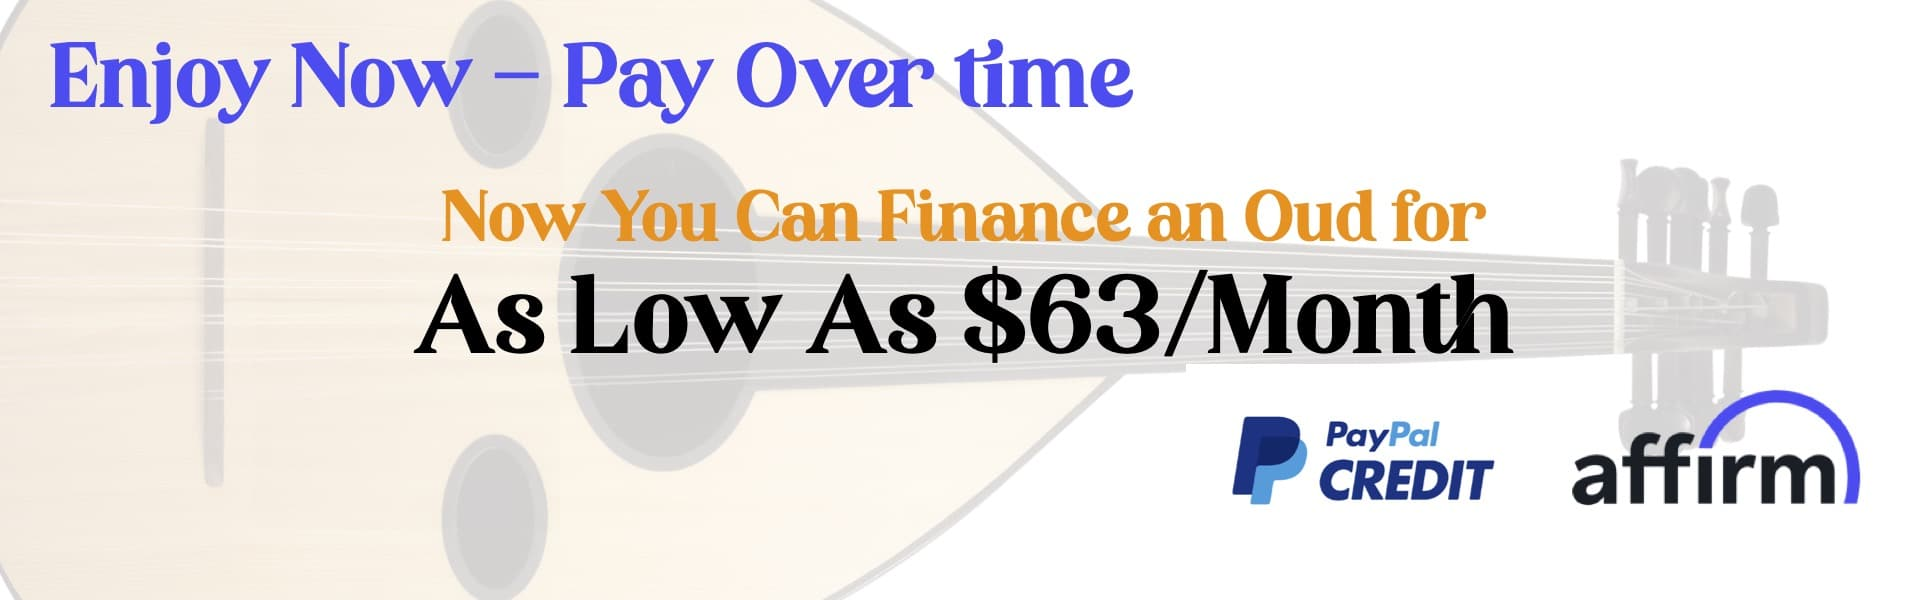 Finance Yoru Oud Instrument using our partner programs PayPal Credit and Affirm